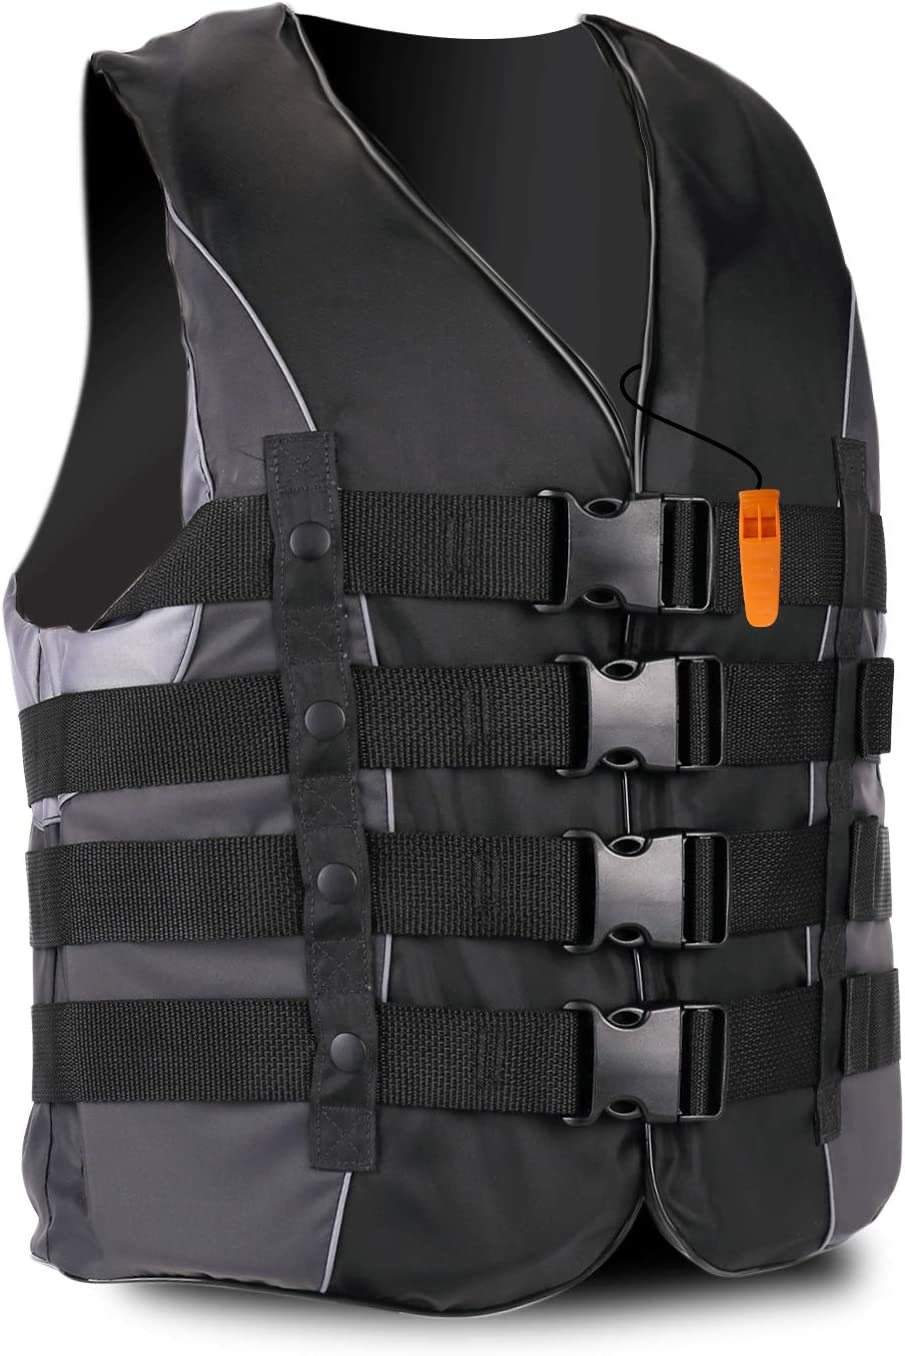 XGEAR Adult USCG Life Water Sports Vest Jacket Safety Max 57% OFF and trust